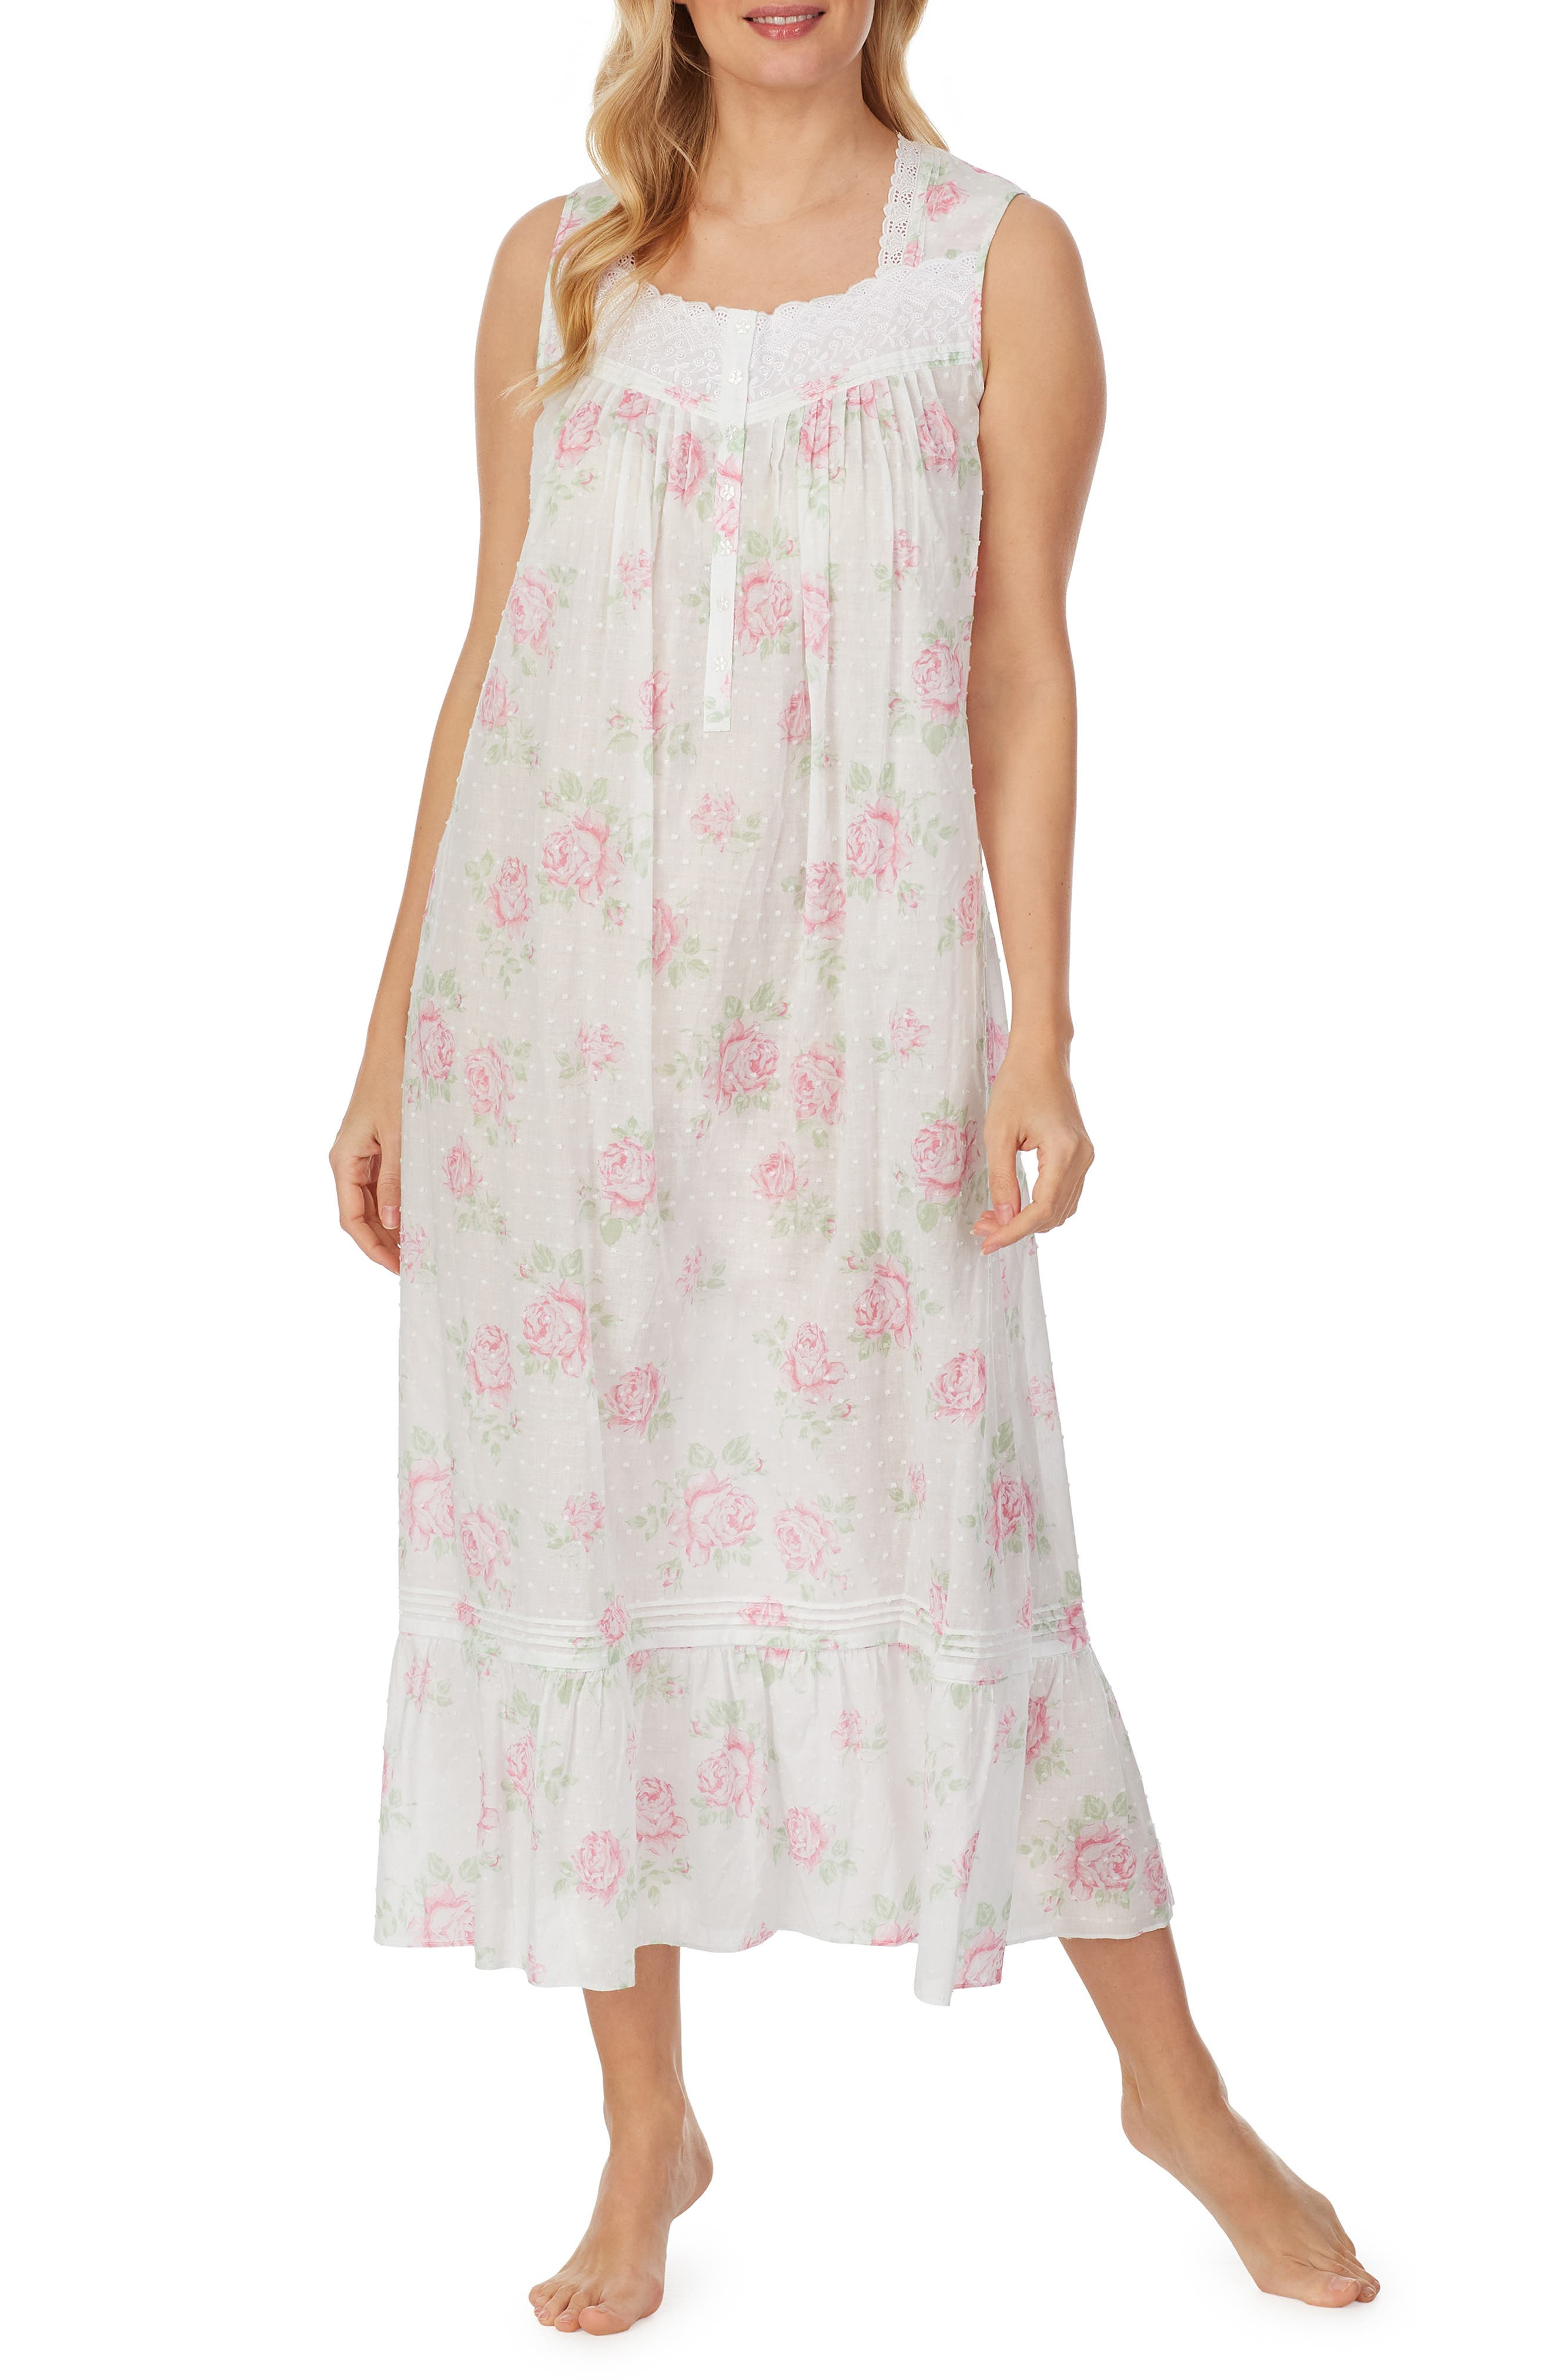 Floral Eyelet Ballet Nightgown